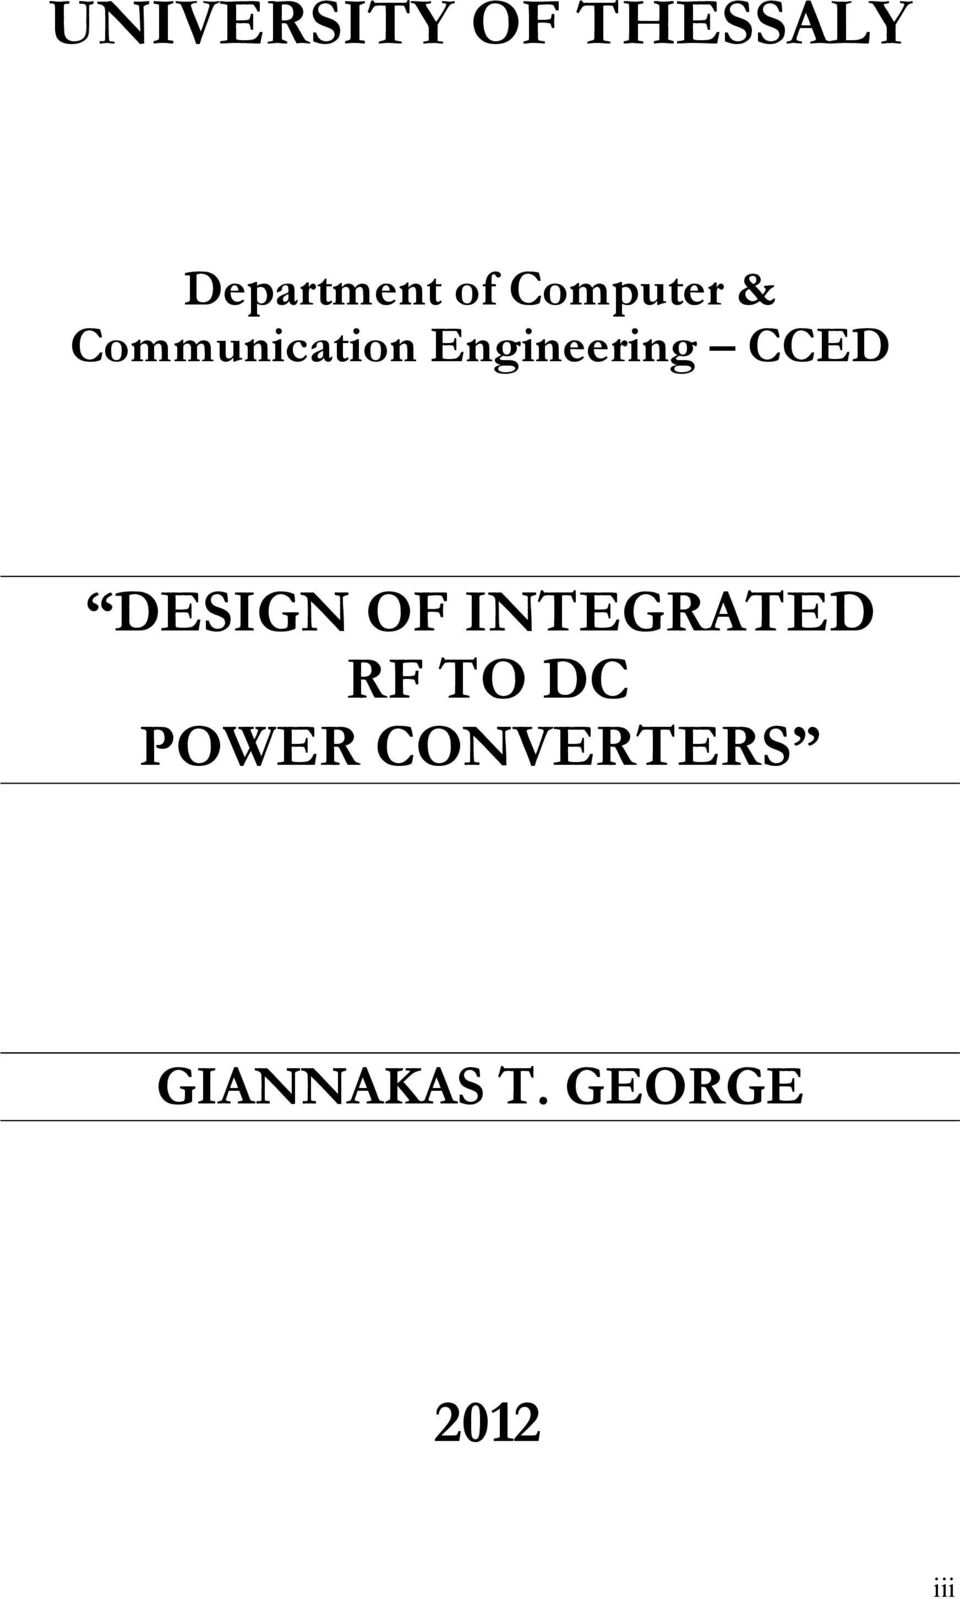 CCED DESIGN OF INTEGRATED RF TO DC